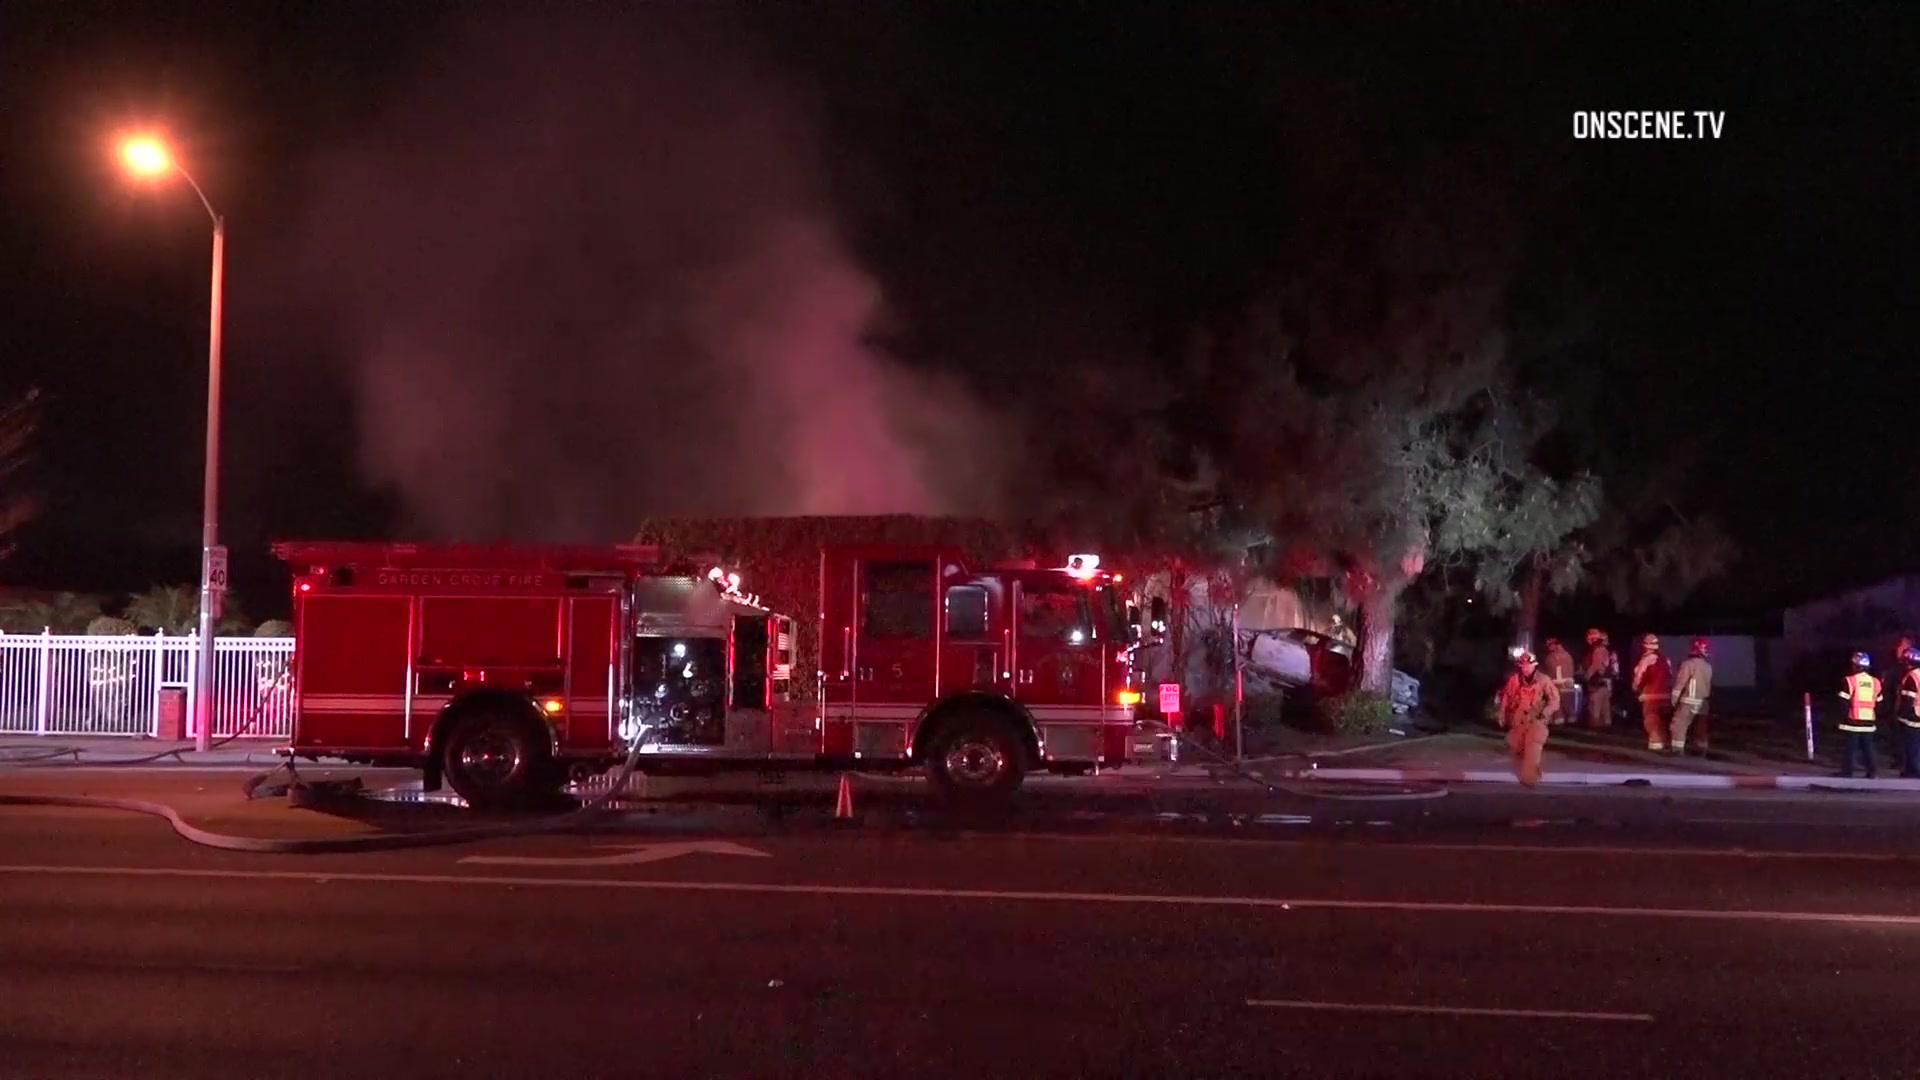 Fiery car crash in garden grove kills 1 person Garden grove breaking news now